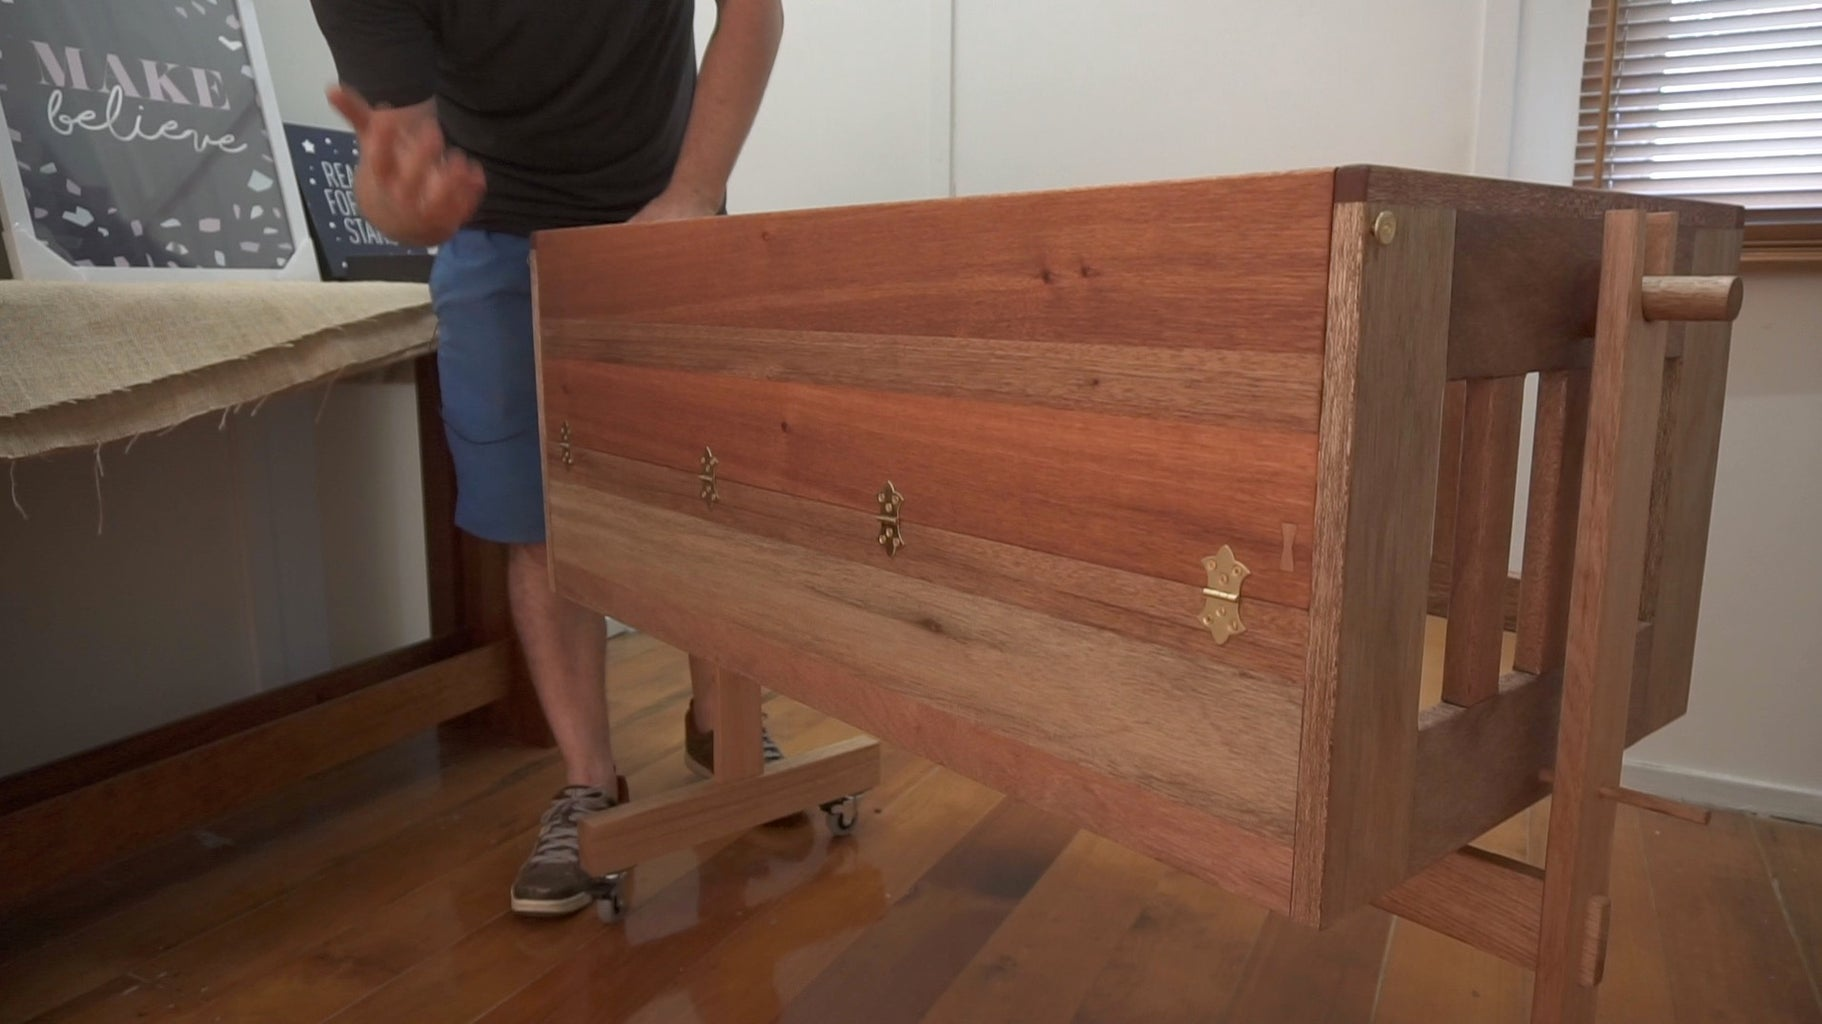 Add the Hardware/Mechanicals to the Bassinet